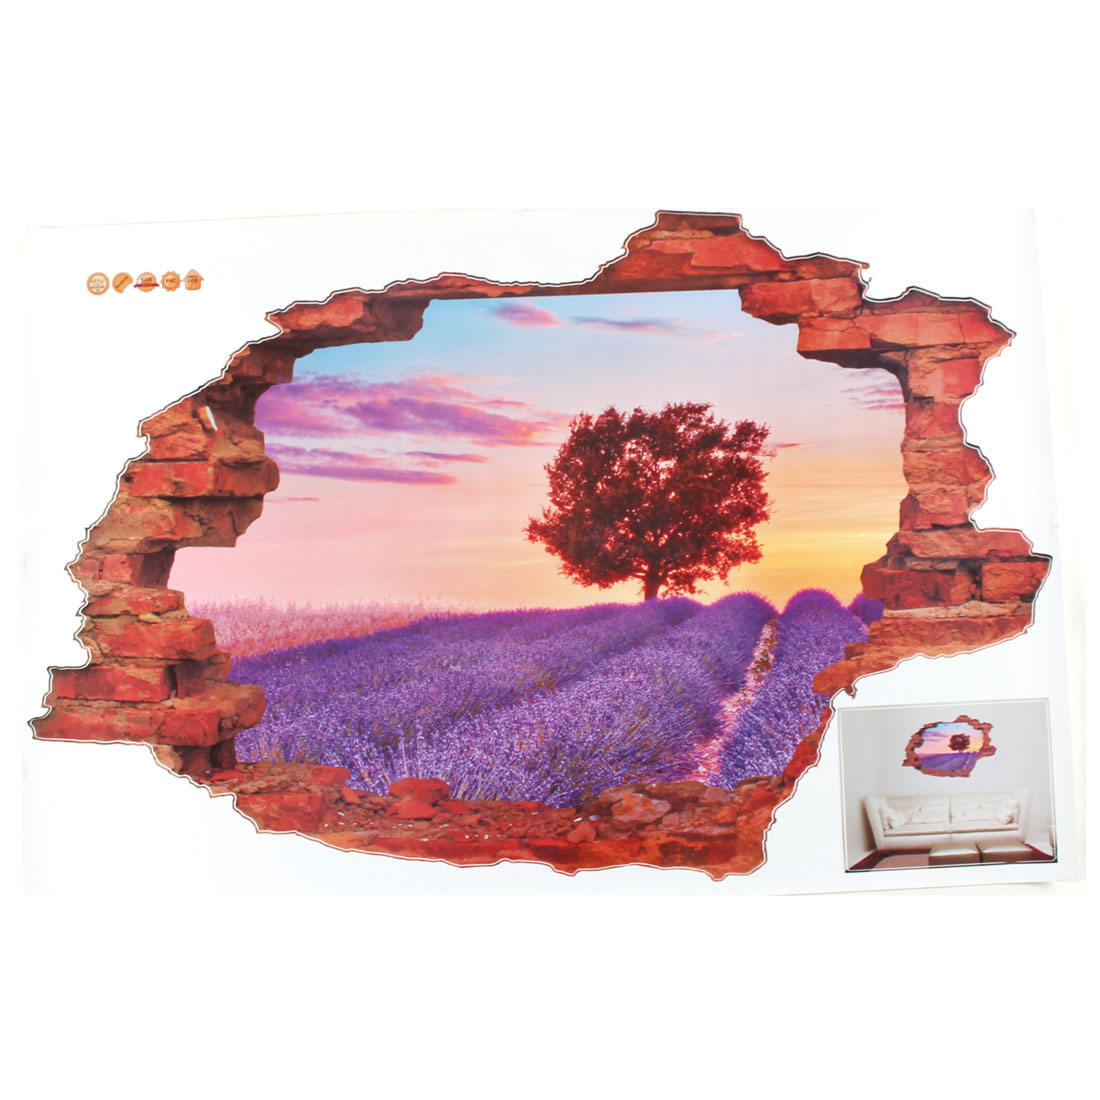 Home 3D Lavender Scenery Pattern Art Decal Wall Sticker Mural Decoration